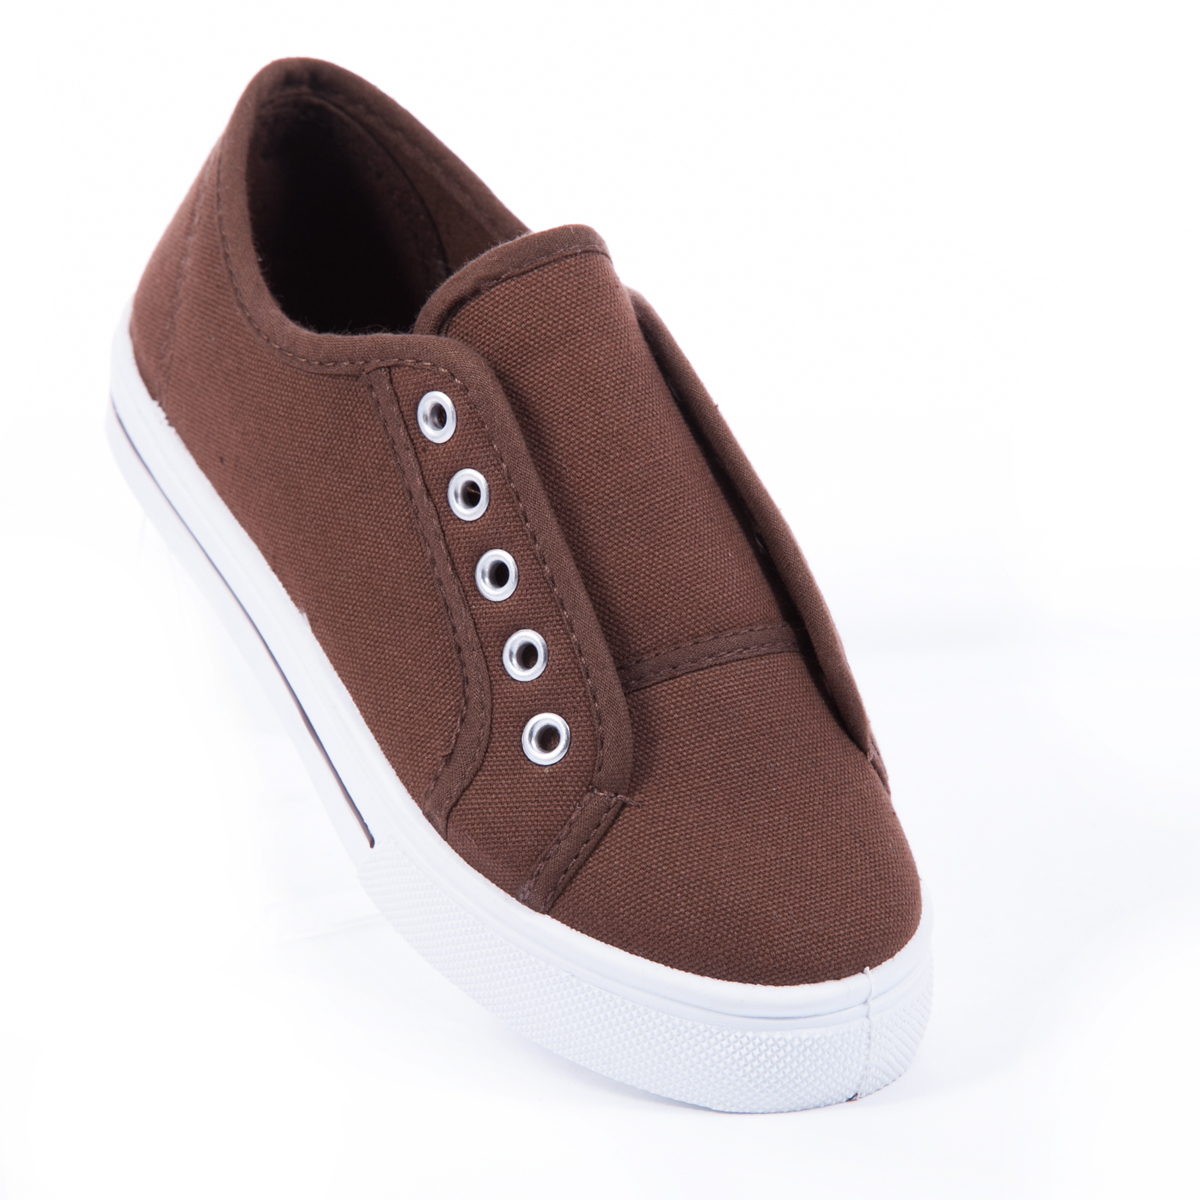 slip on shoes lace less sneaker canvas flat boys